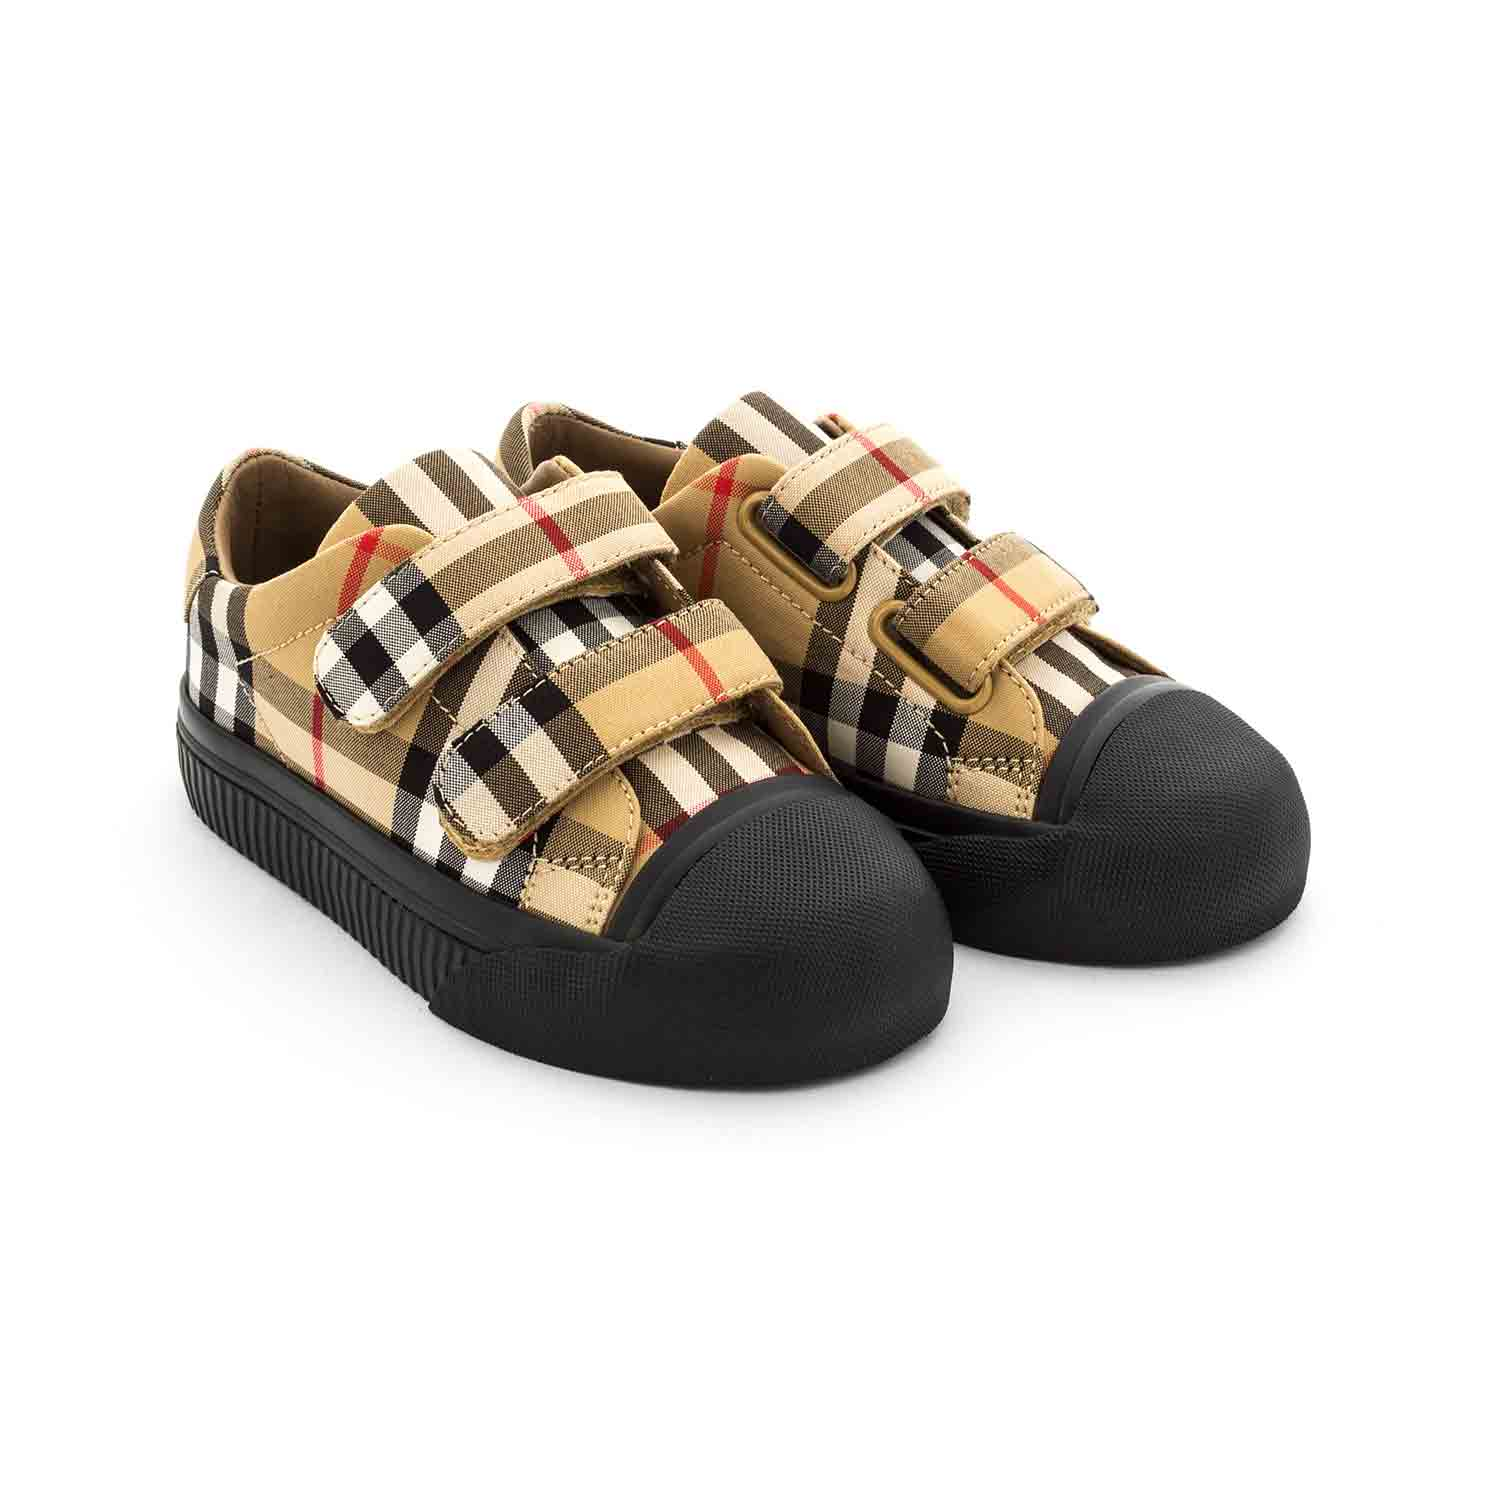 6dc1a87a902 Burberry - Sneaker With Chek Pattern - annameglio.com shop online